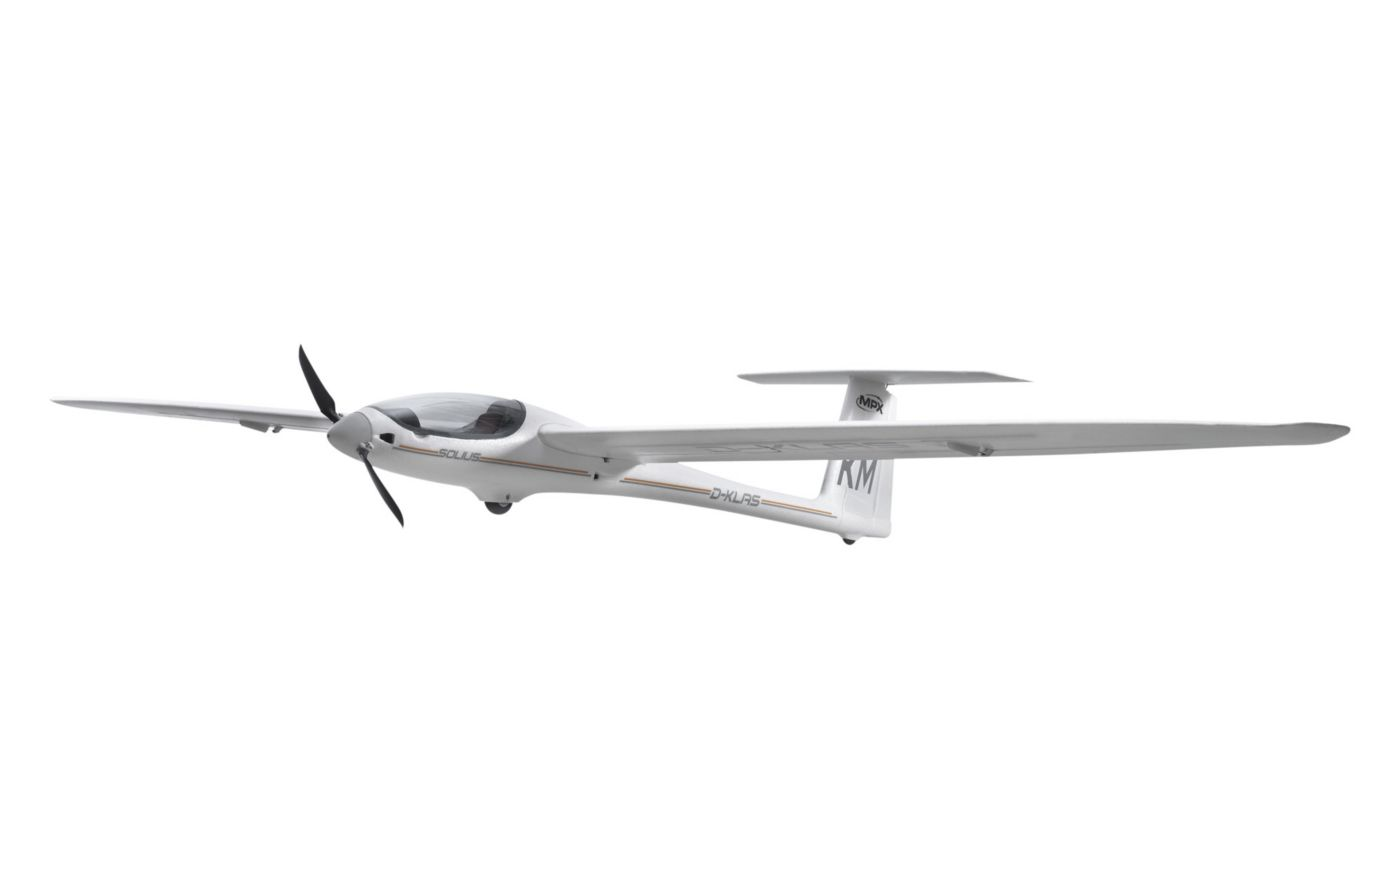 Image for Solius T-Tail 2.1m Receiver Ready from Force RC